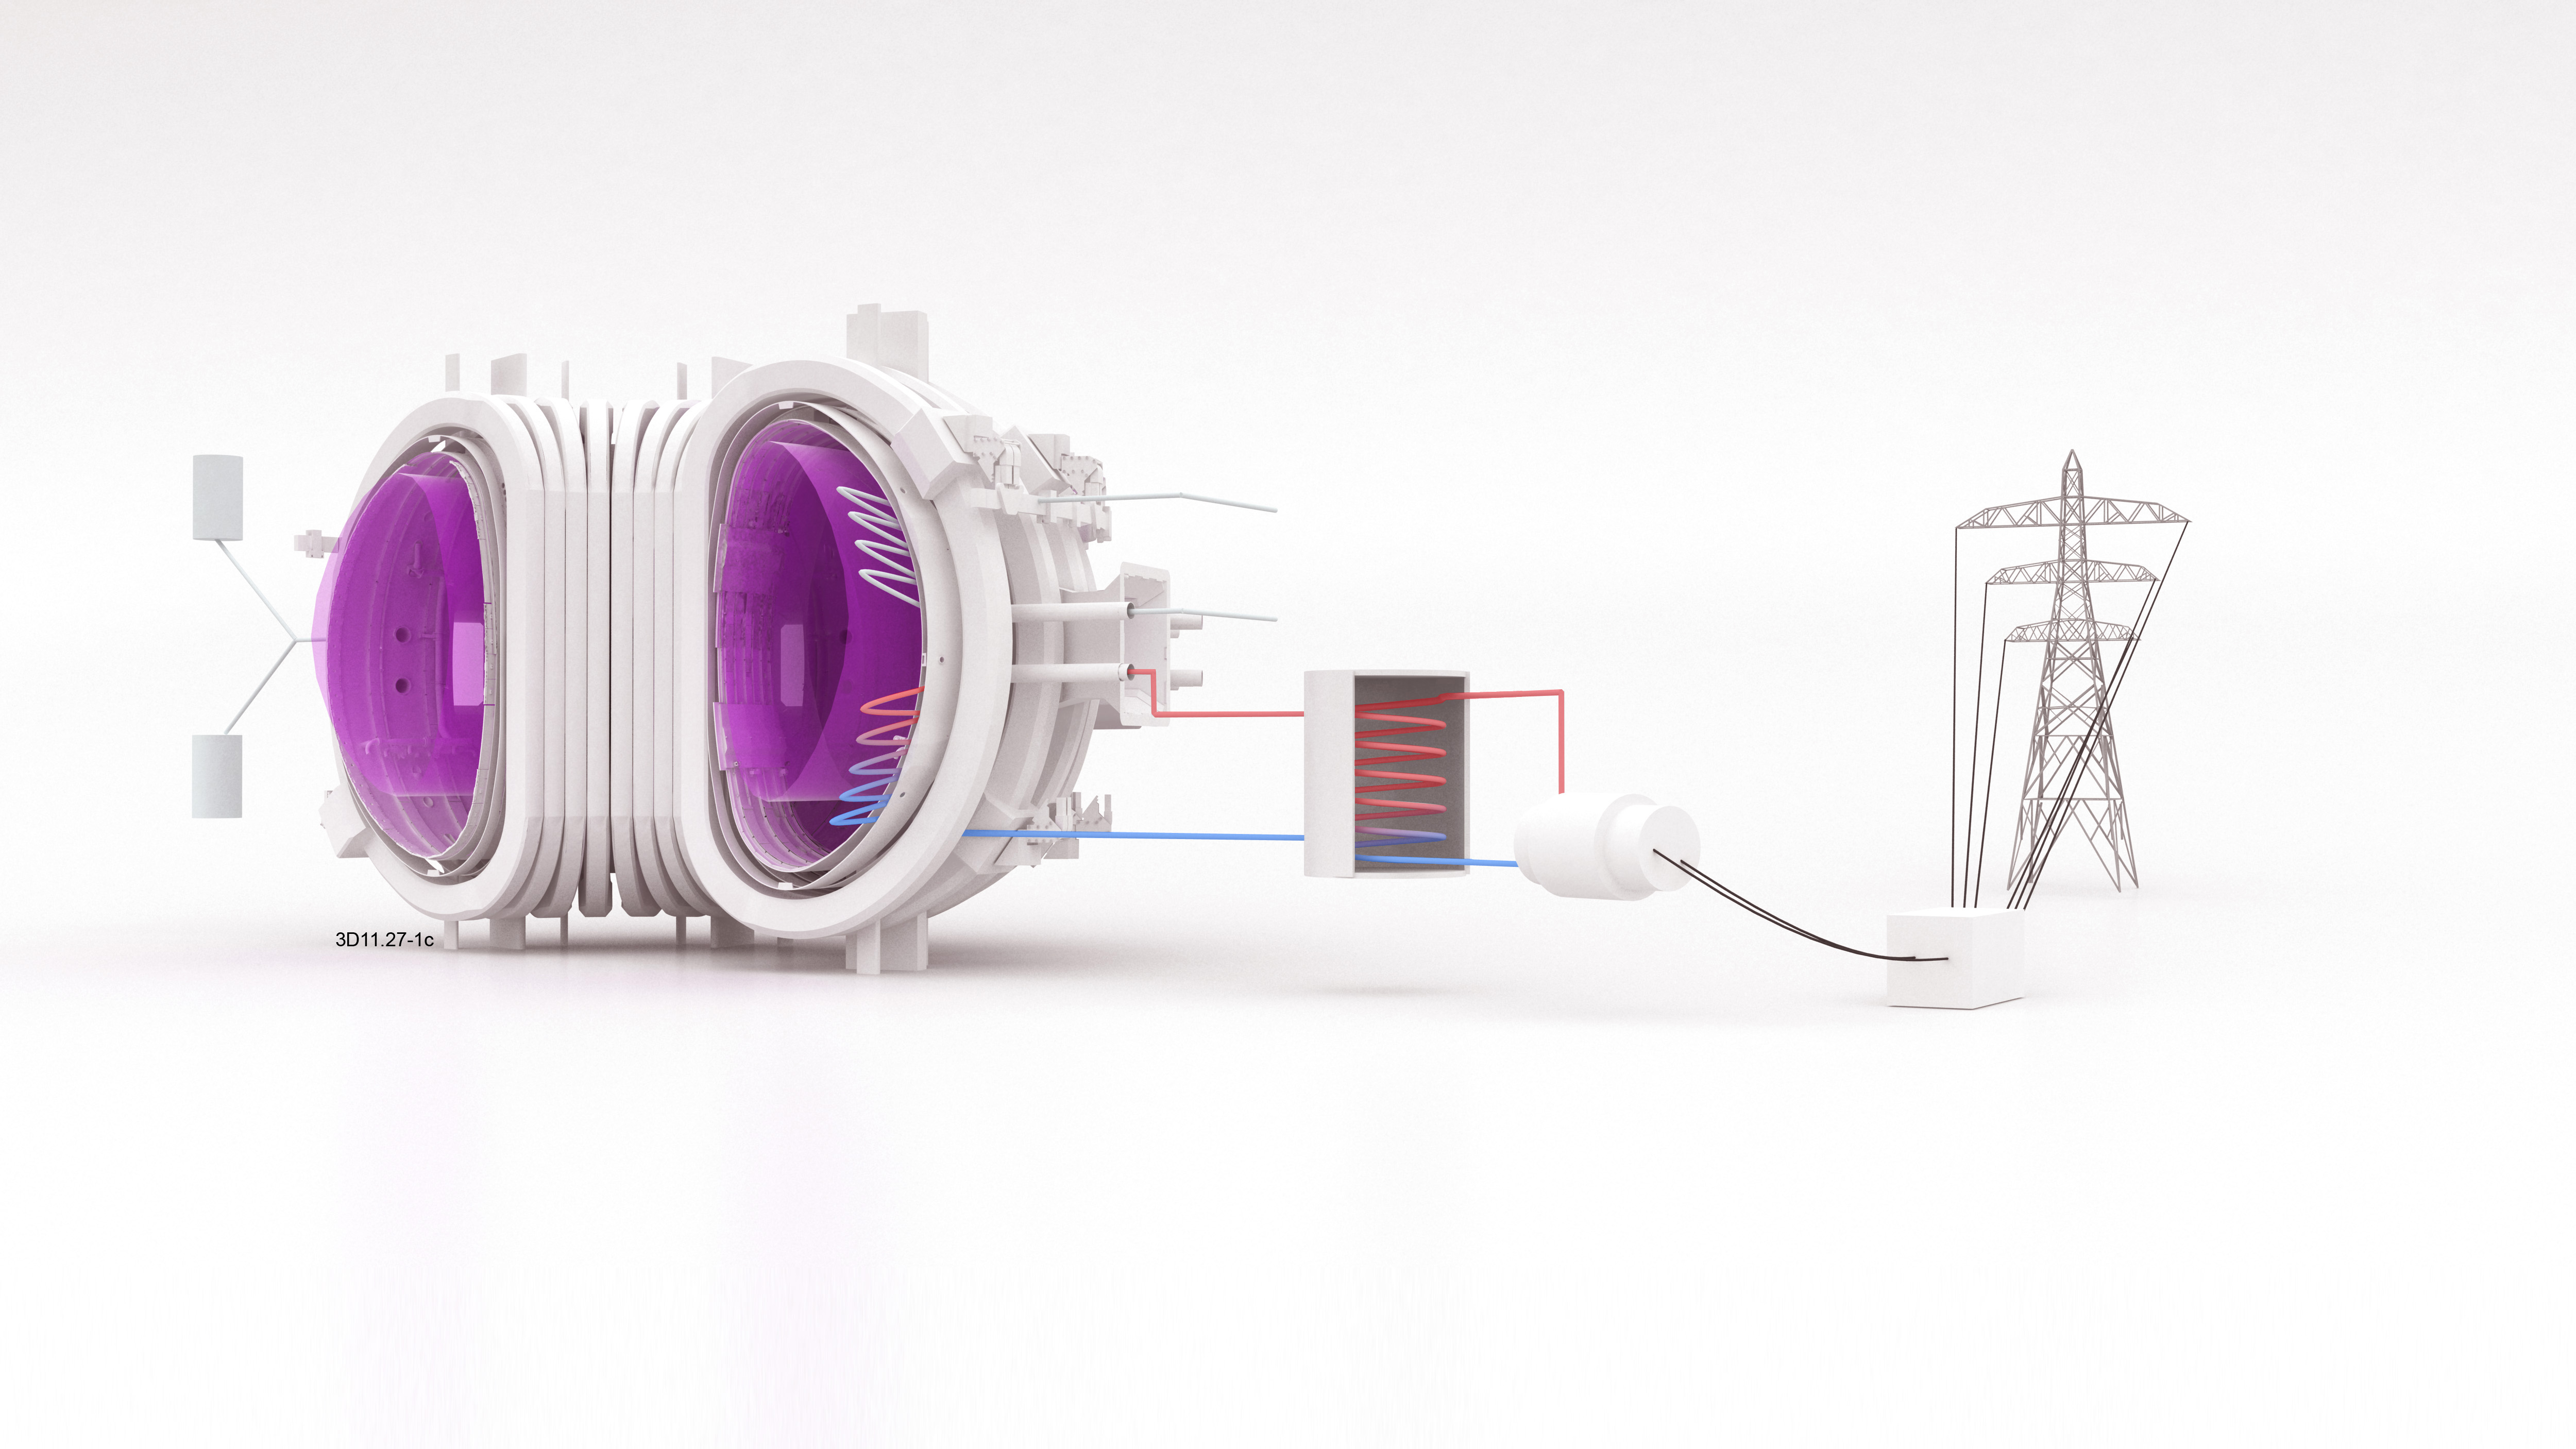 Schematic diagram of fusion power plant